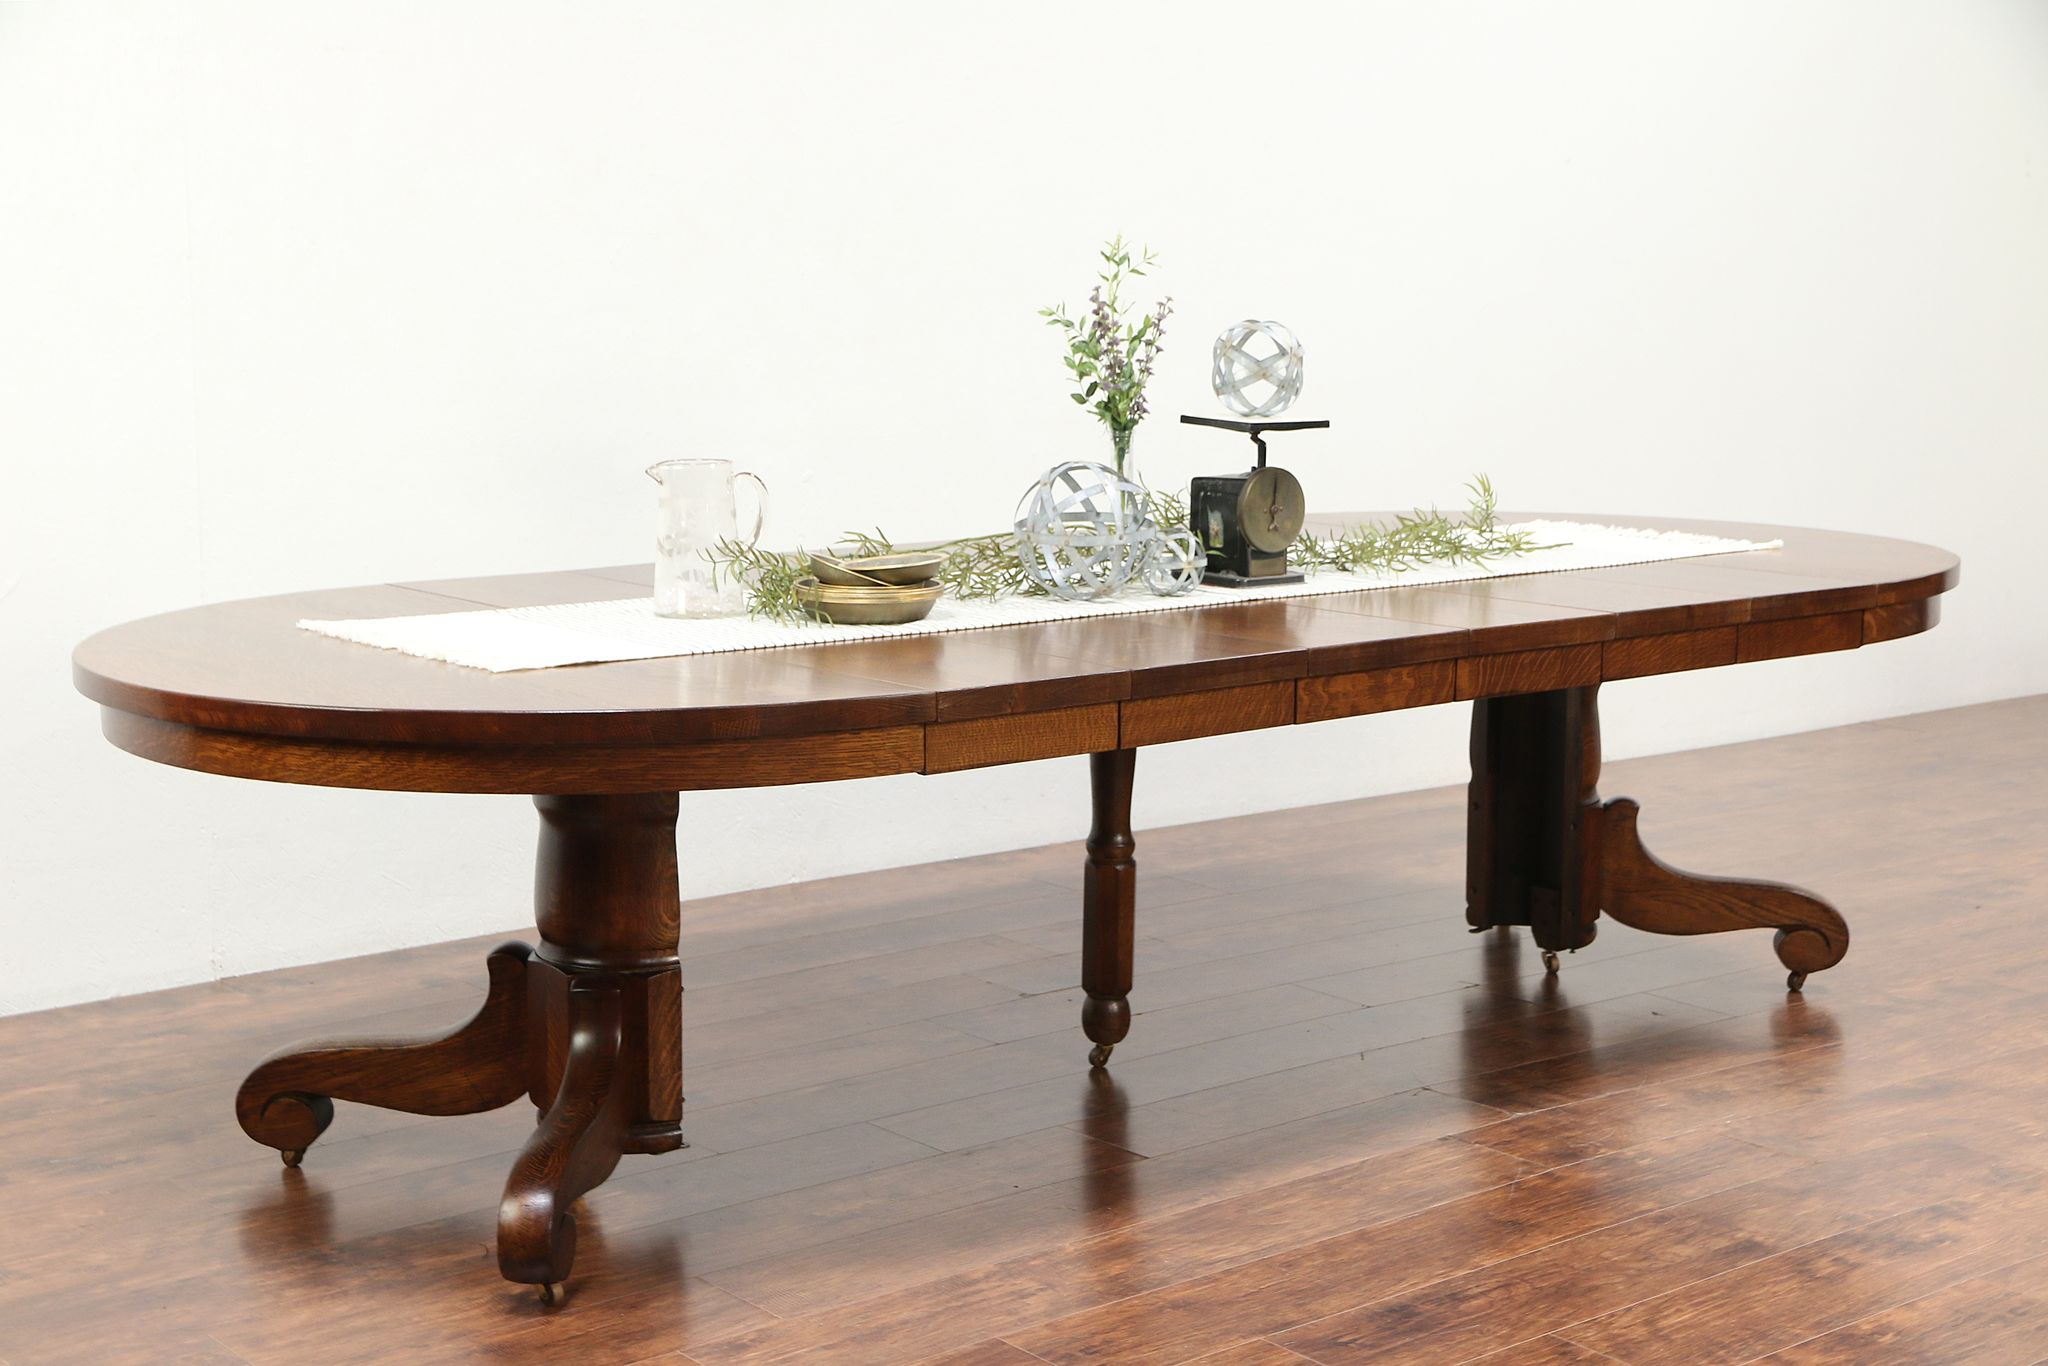 Sold Round 54 Antique 1900 Oak Pedestal Dining Table 6 Leaves Extends 10 5 29322 Harp Gallery Antiques Furniture